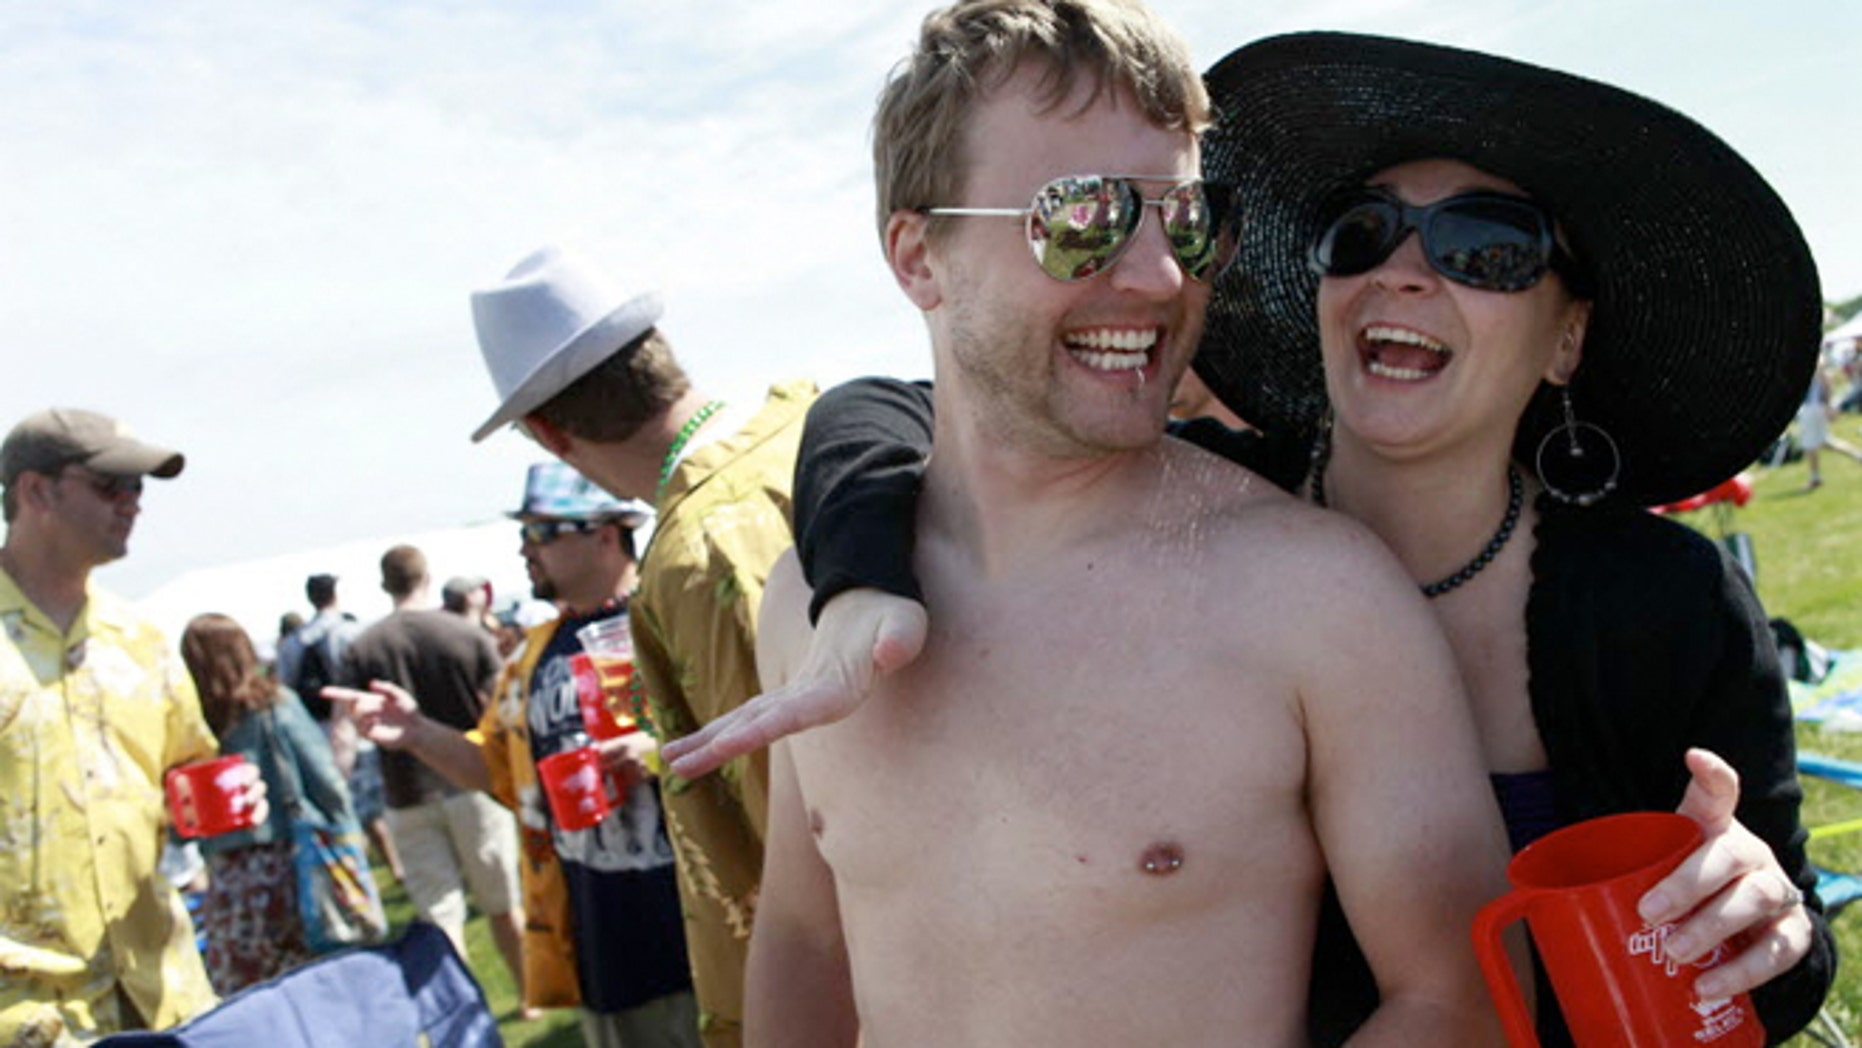 Parties on the in-field are the main attraction for some at Pimlico Race Course, like these two the 135th Preakness Stakes.